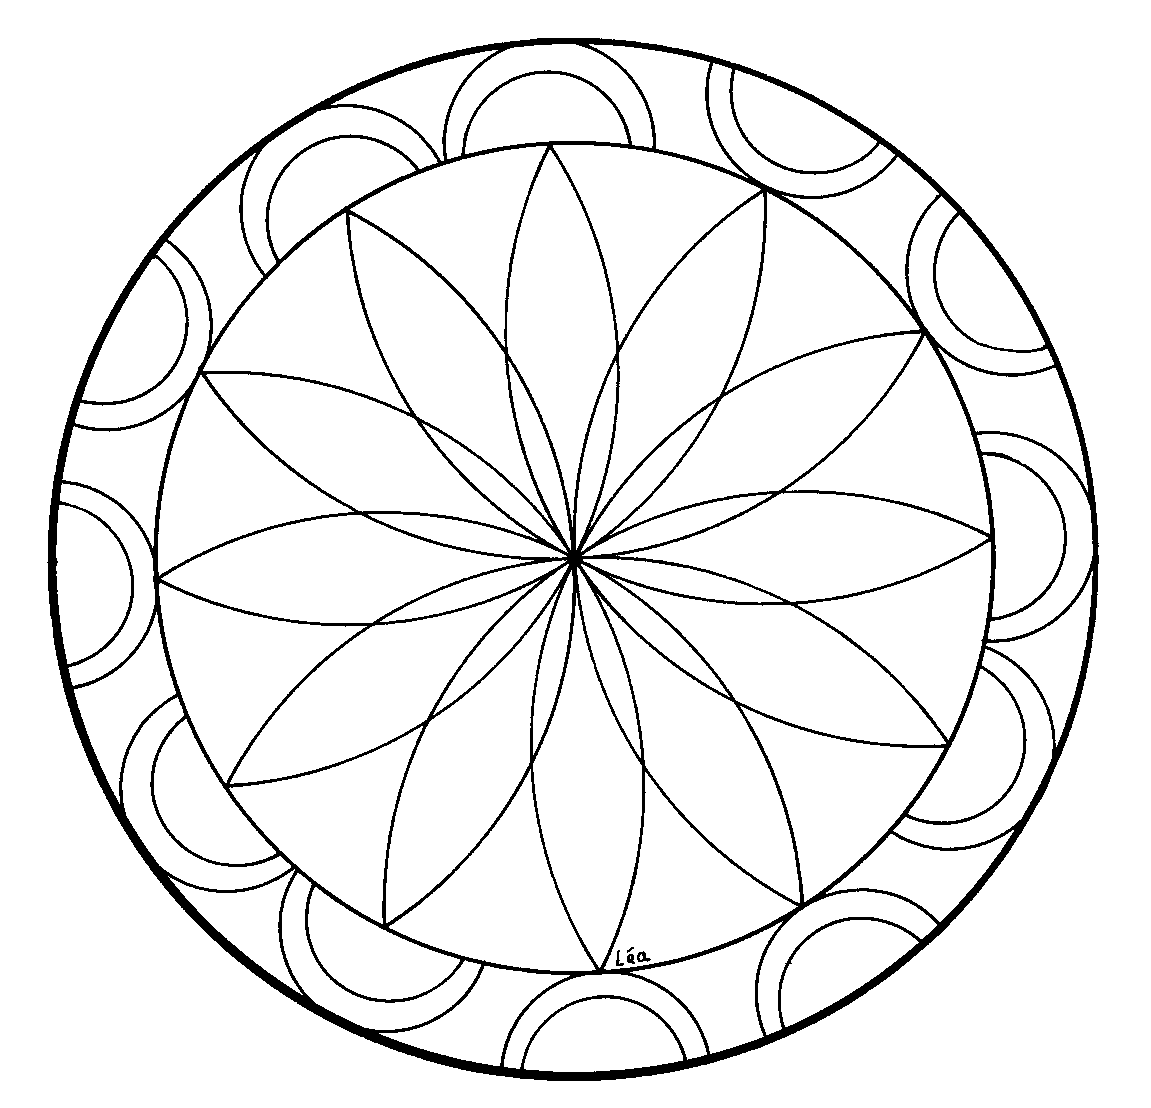 Simple Rosettes coloring page for kids